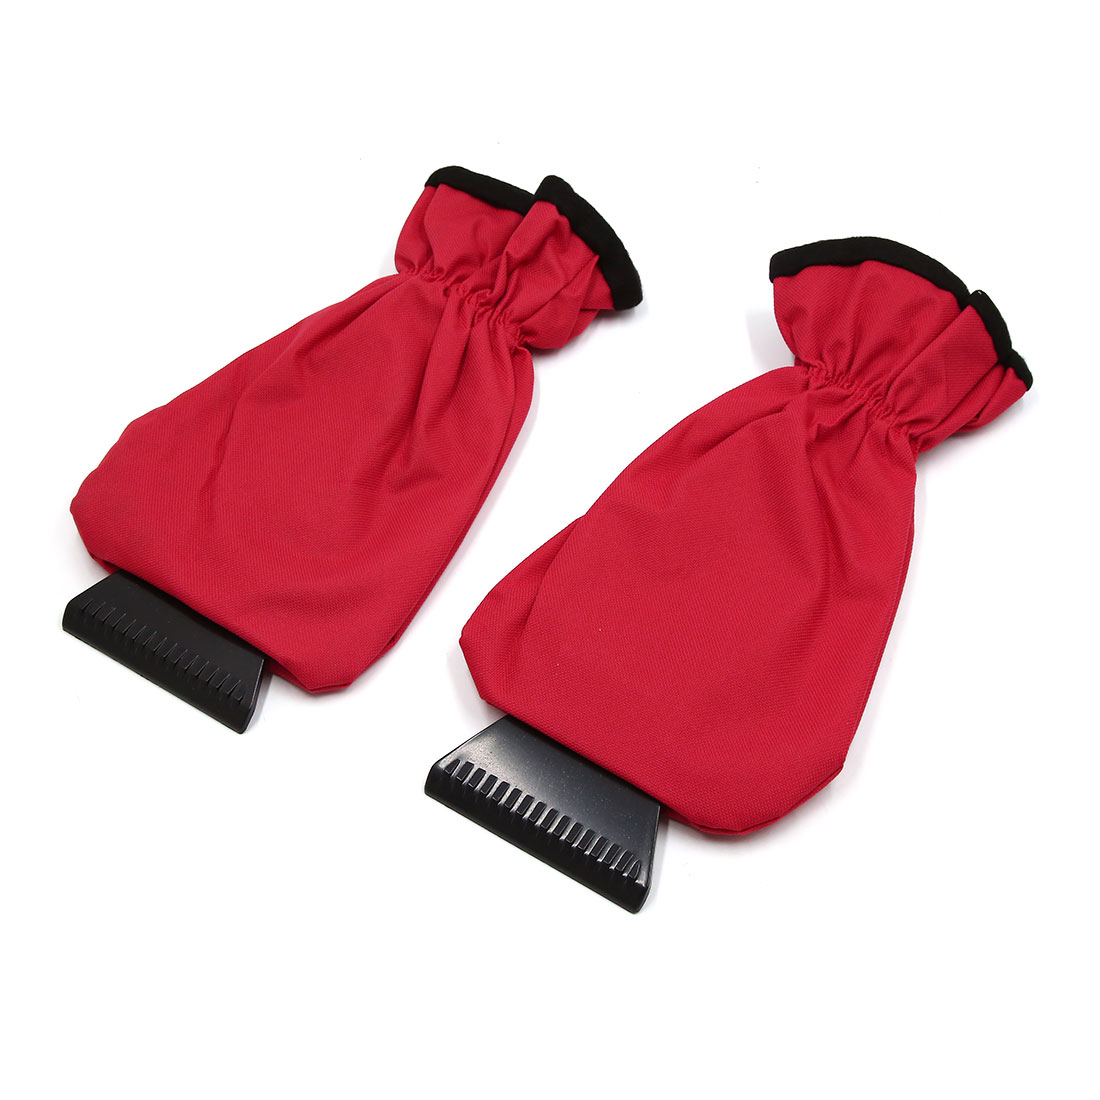 2pcs Red Black Antifreeze Car Windshield Ice Snow Scraper Cleaner Removal Tool